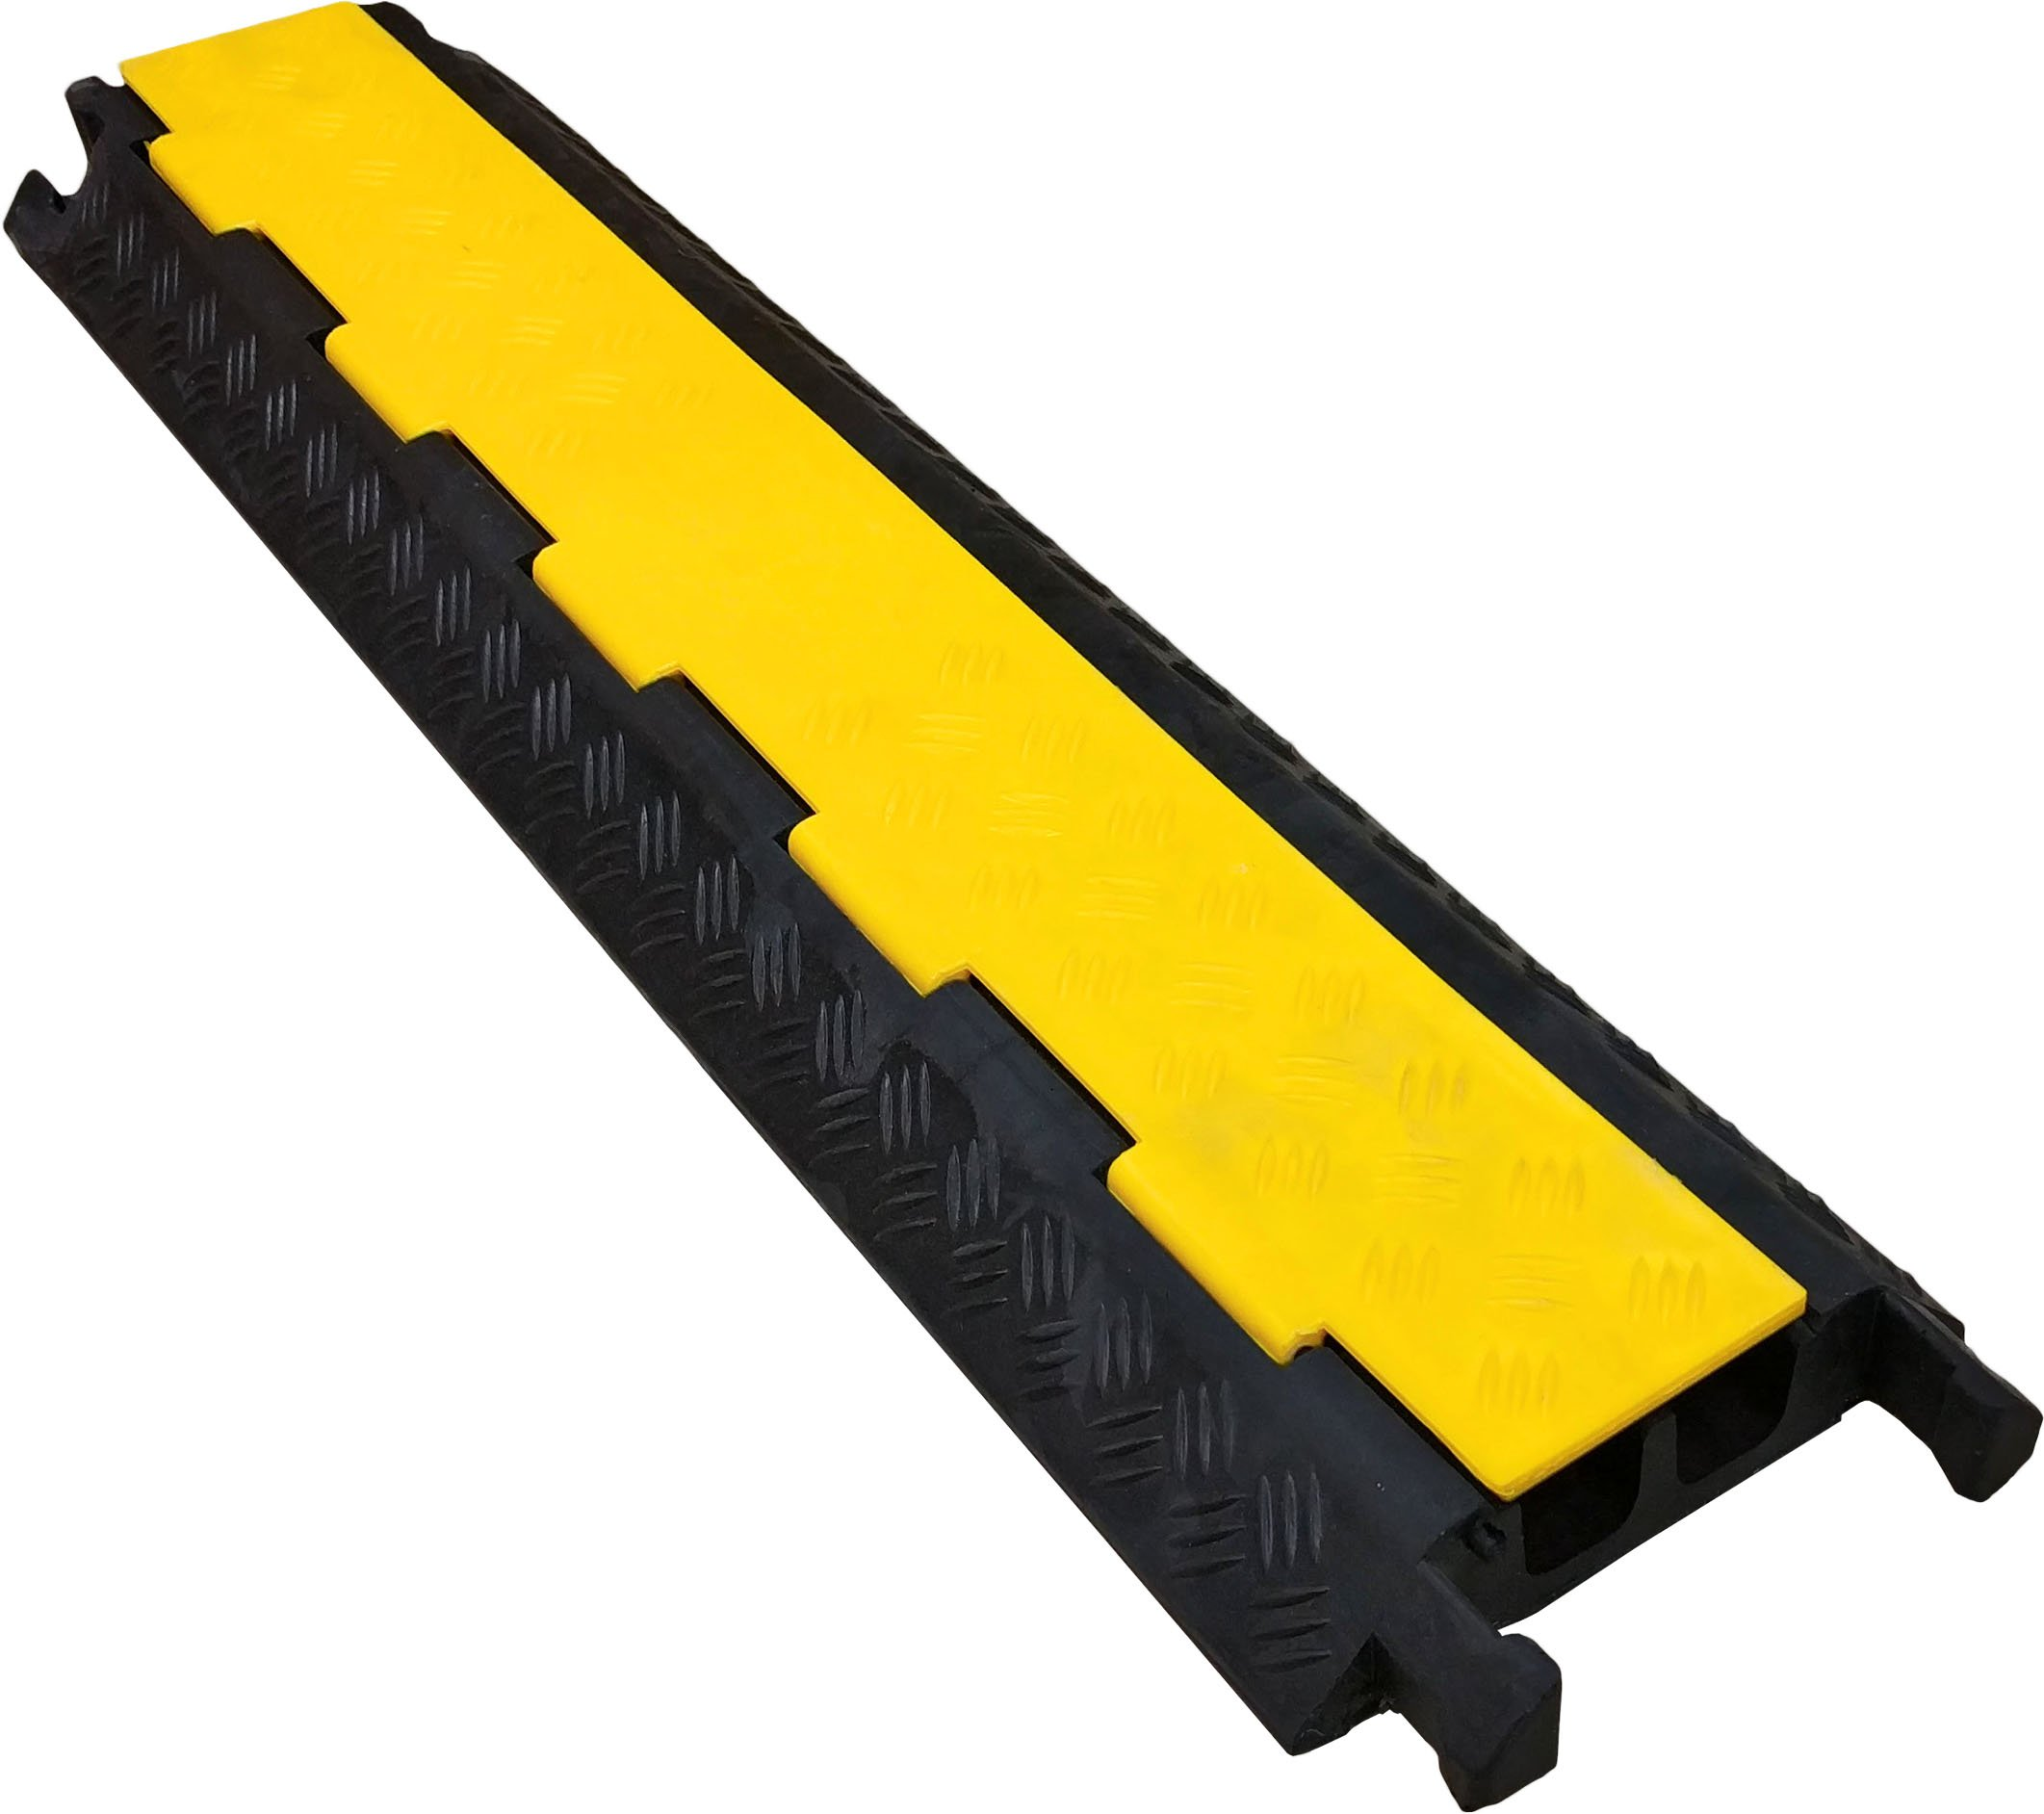 2 Channel Economical Rubber Cable Protector - 3FT Black with Yellow Lid